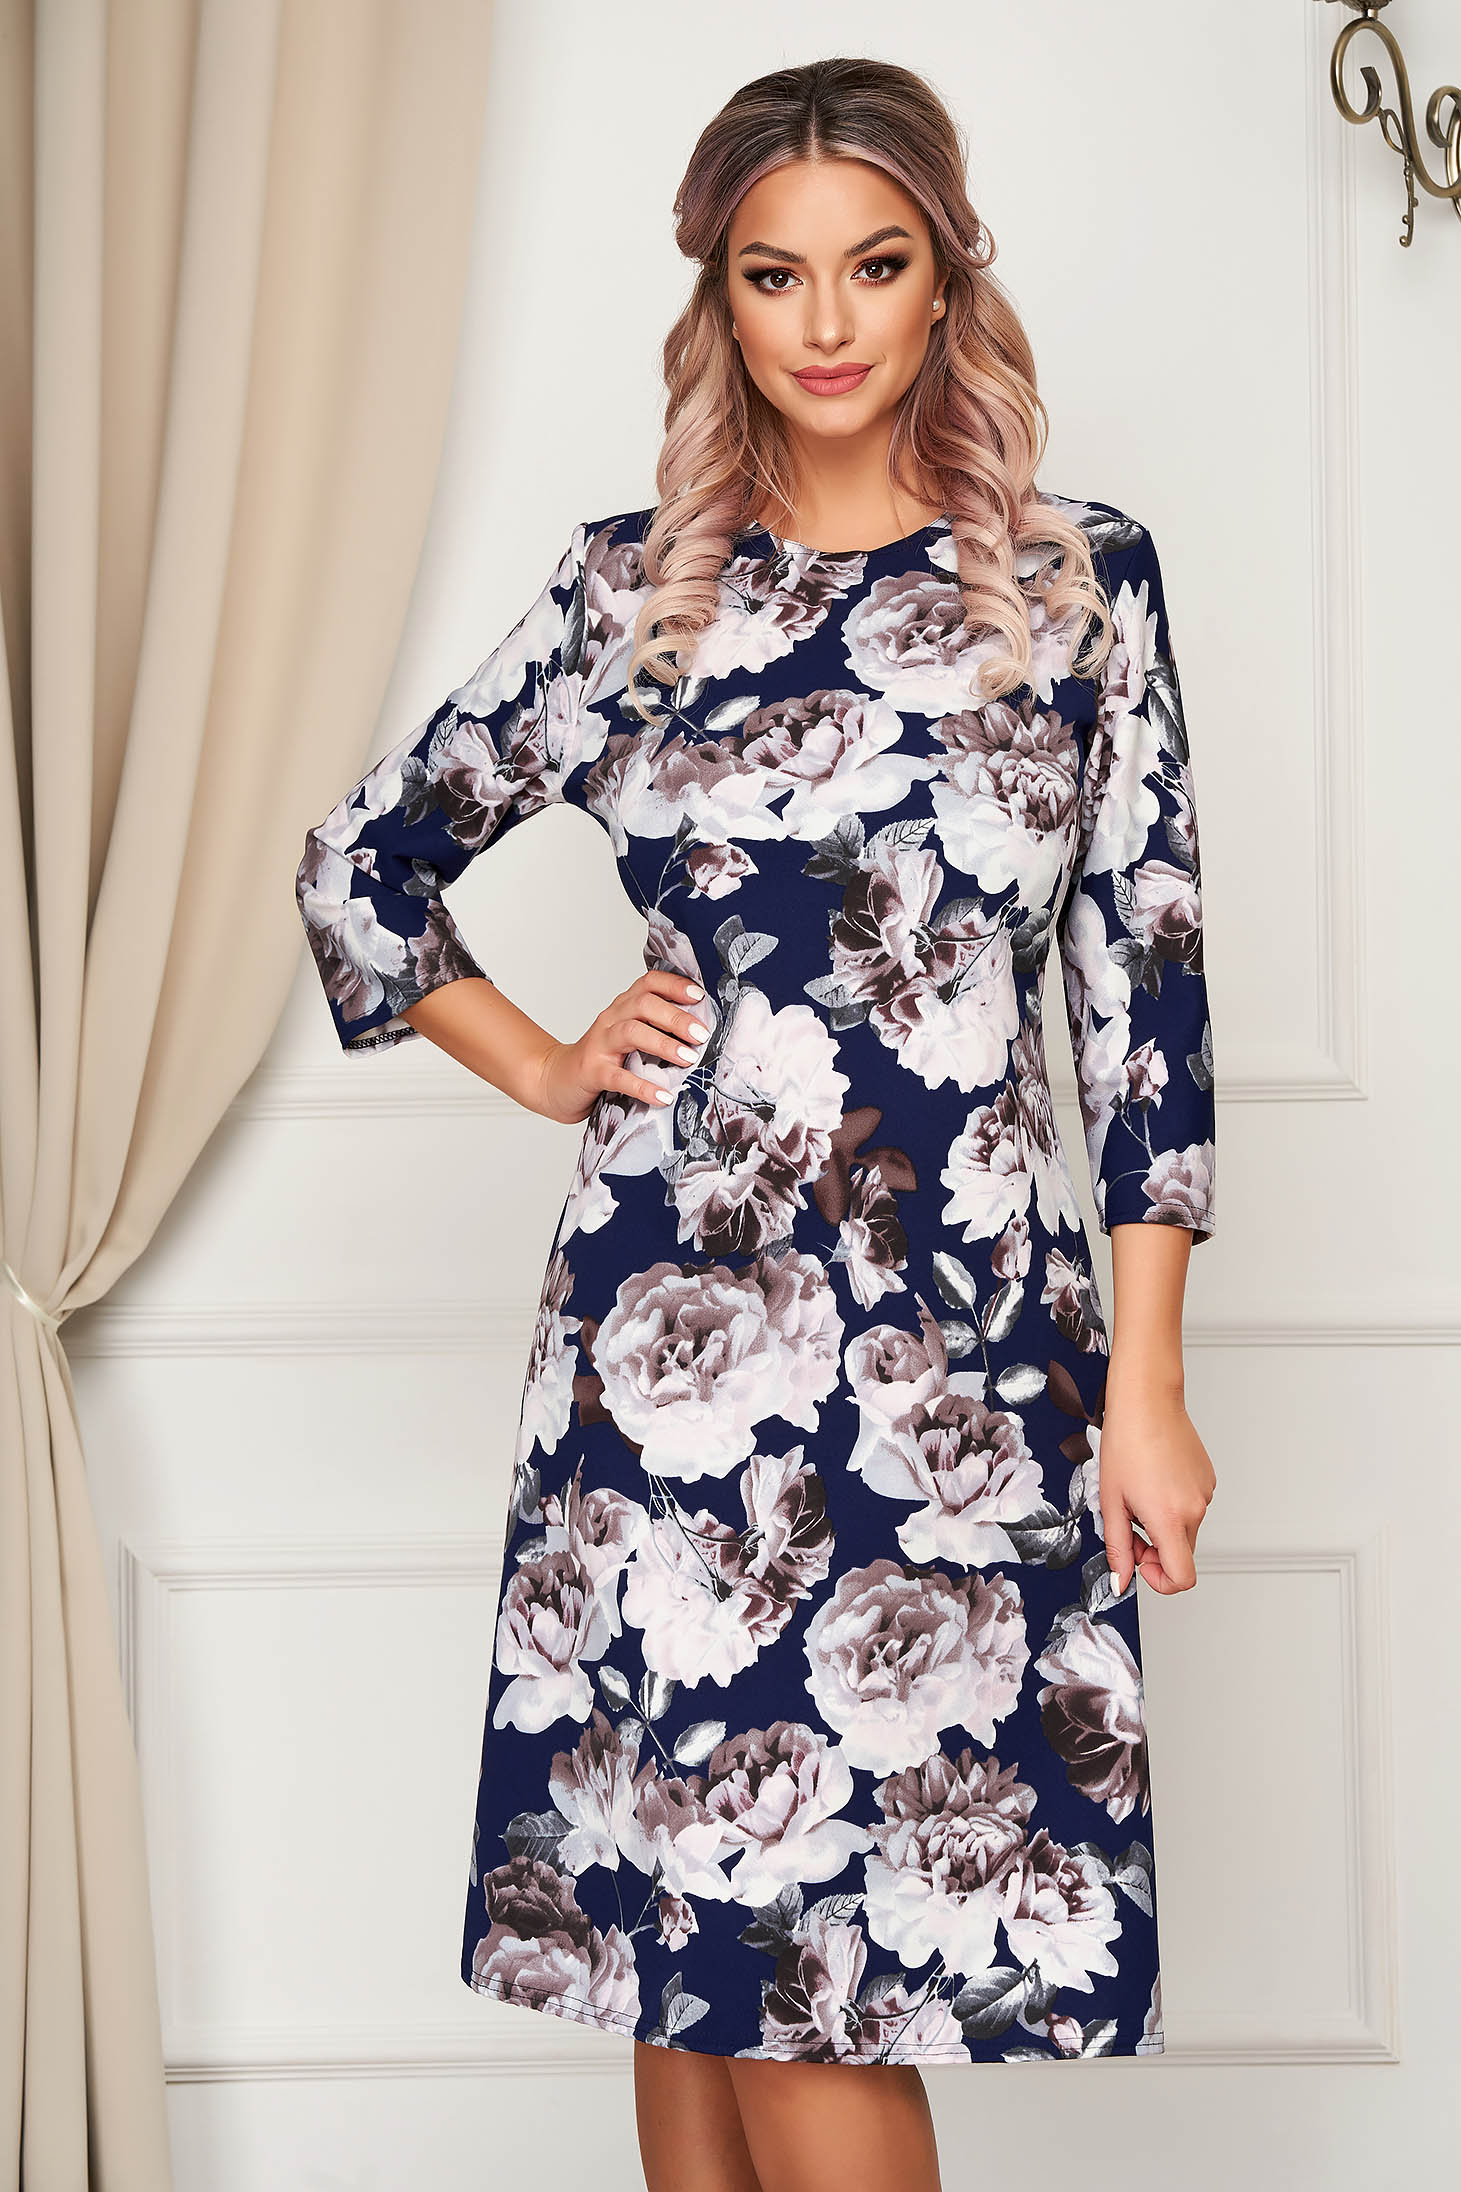 Dress midi daily a-line slightly elastic fabric with floral print